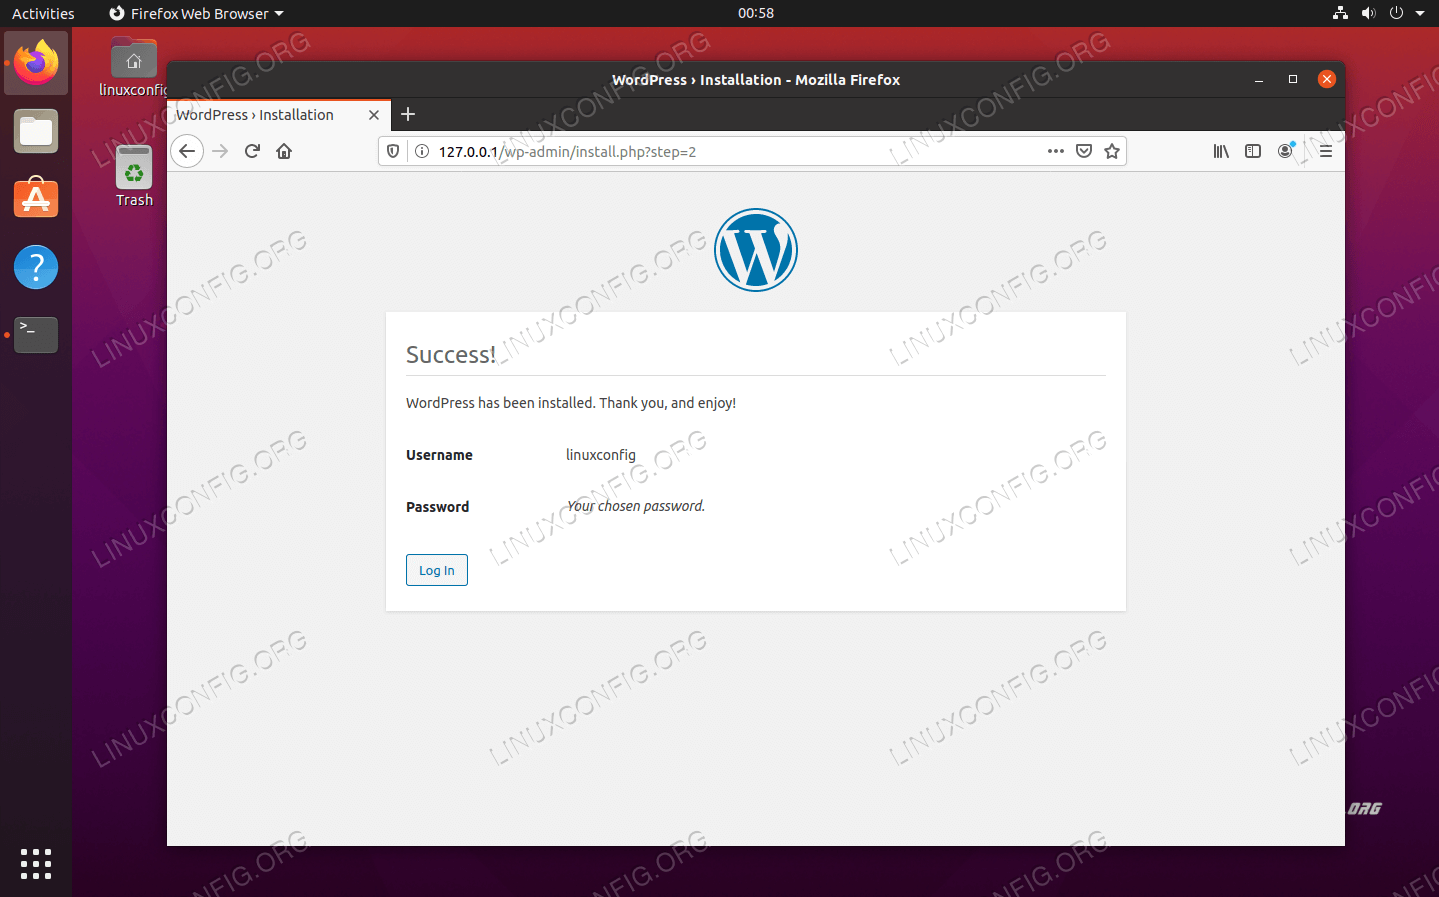 WordPress has installed successfully. Click log in to find the admin menu